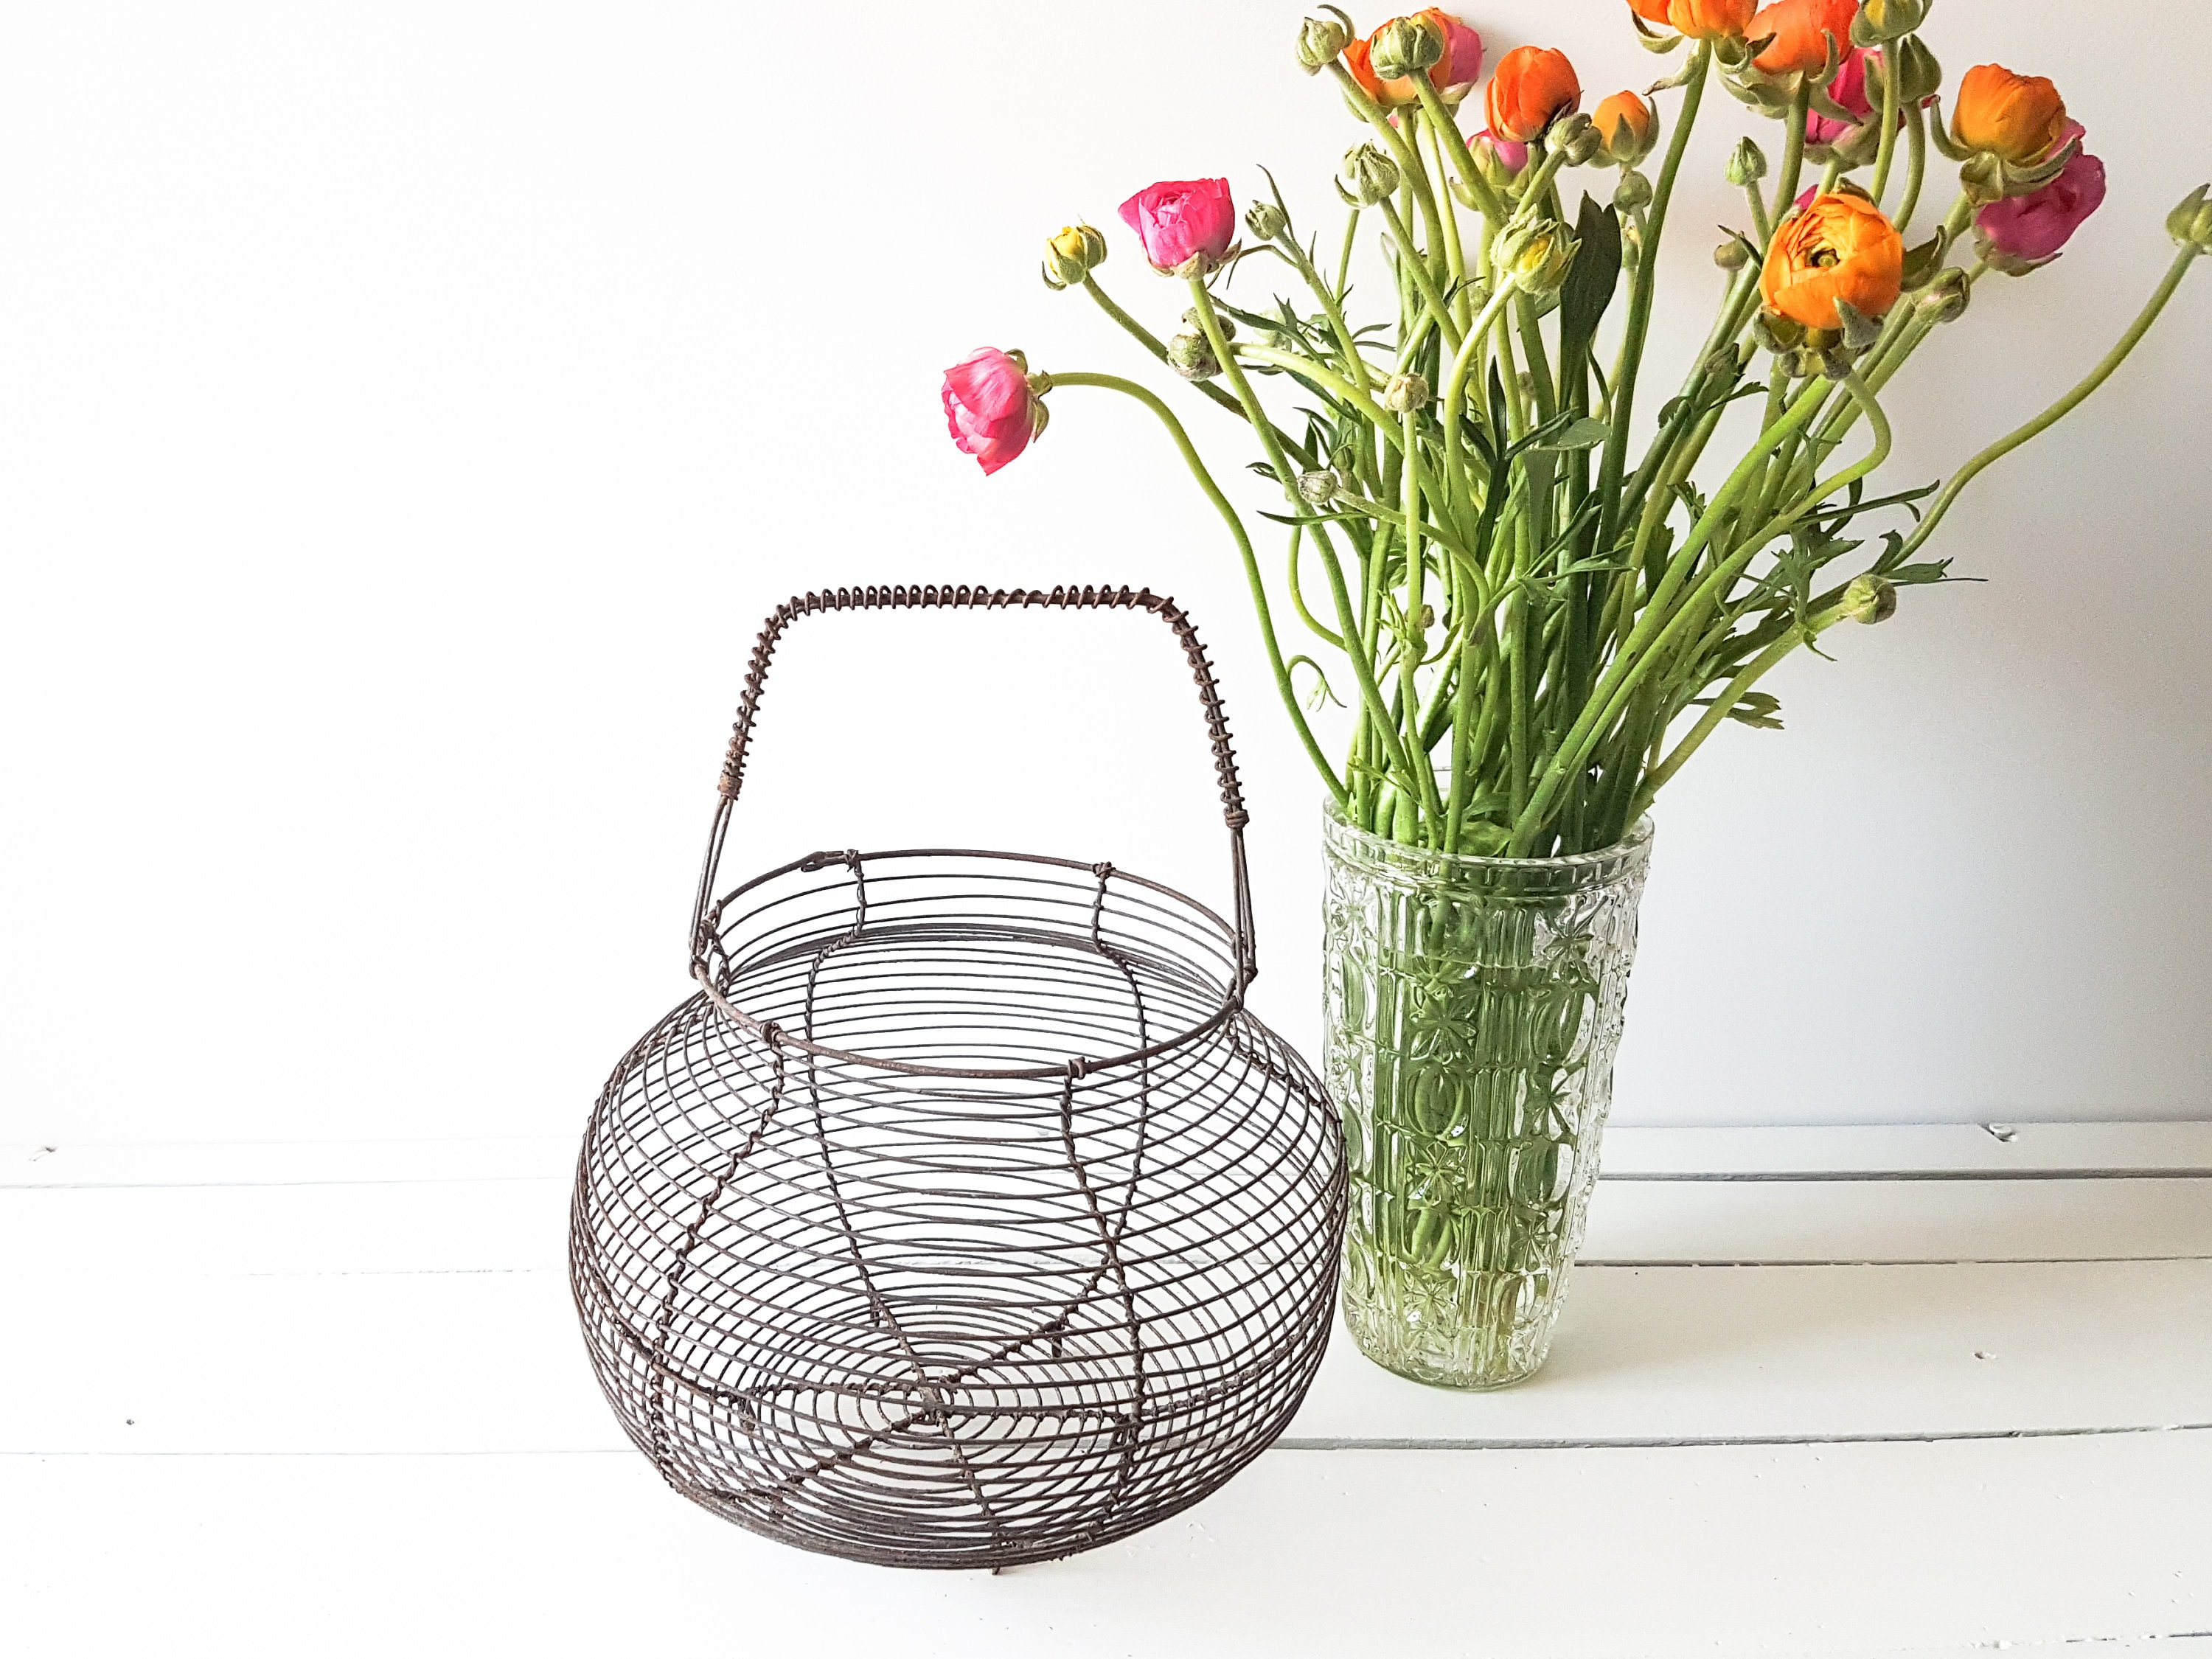 French vintage metal kitchen basket * vintage egg basket * easter ...